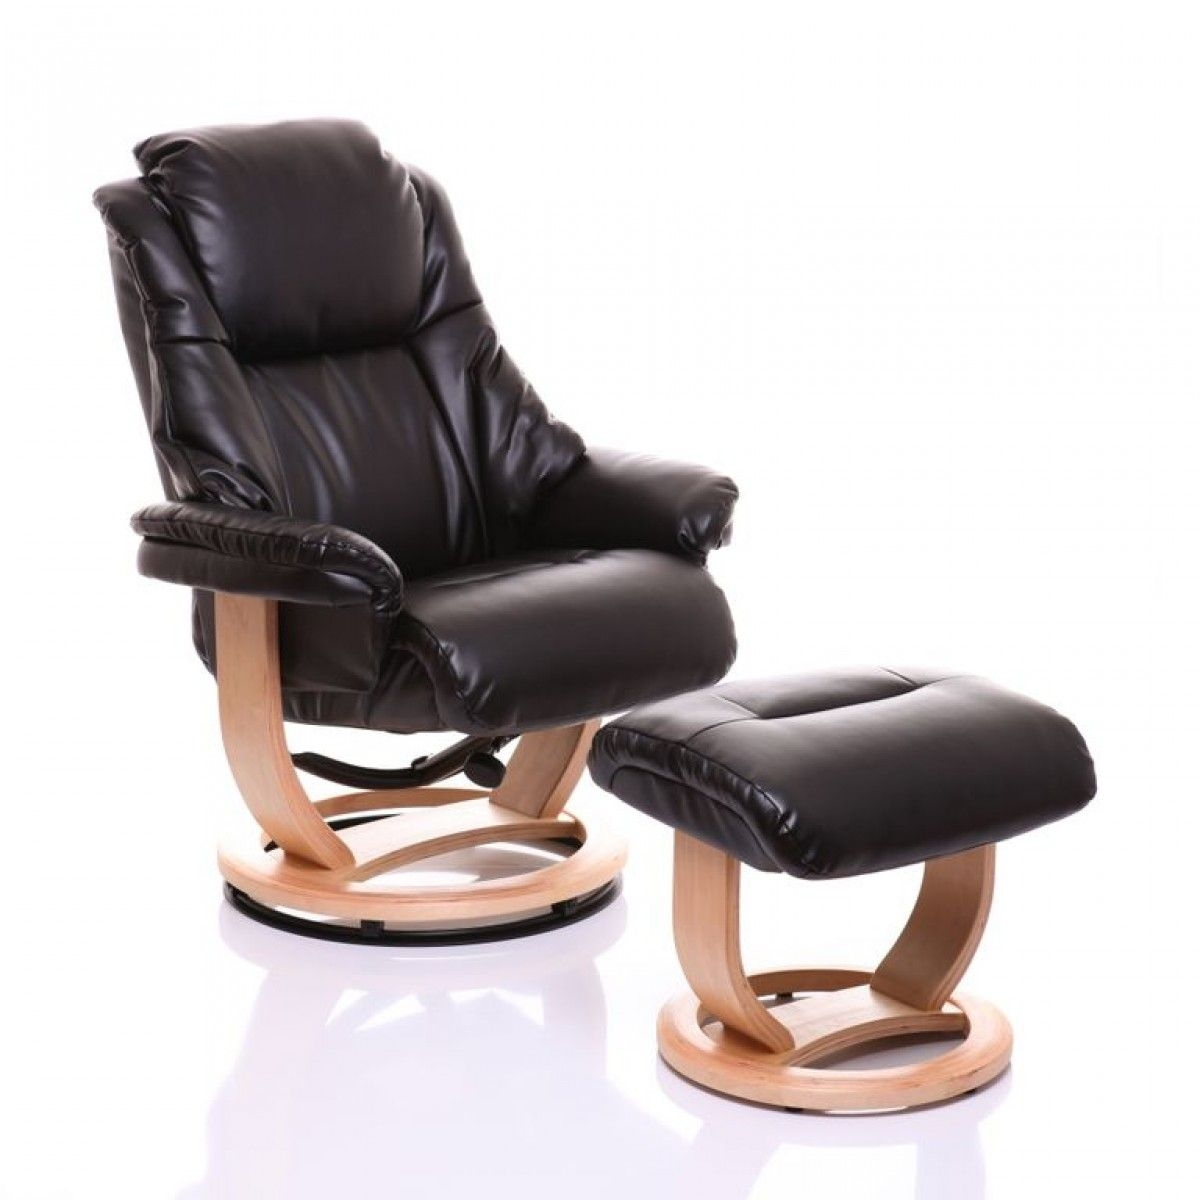 Leather Recliner Chair With Ottoman 5